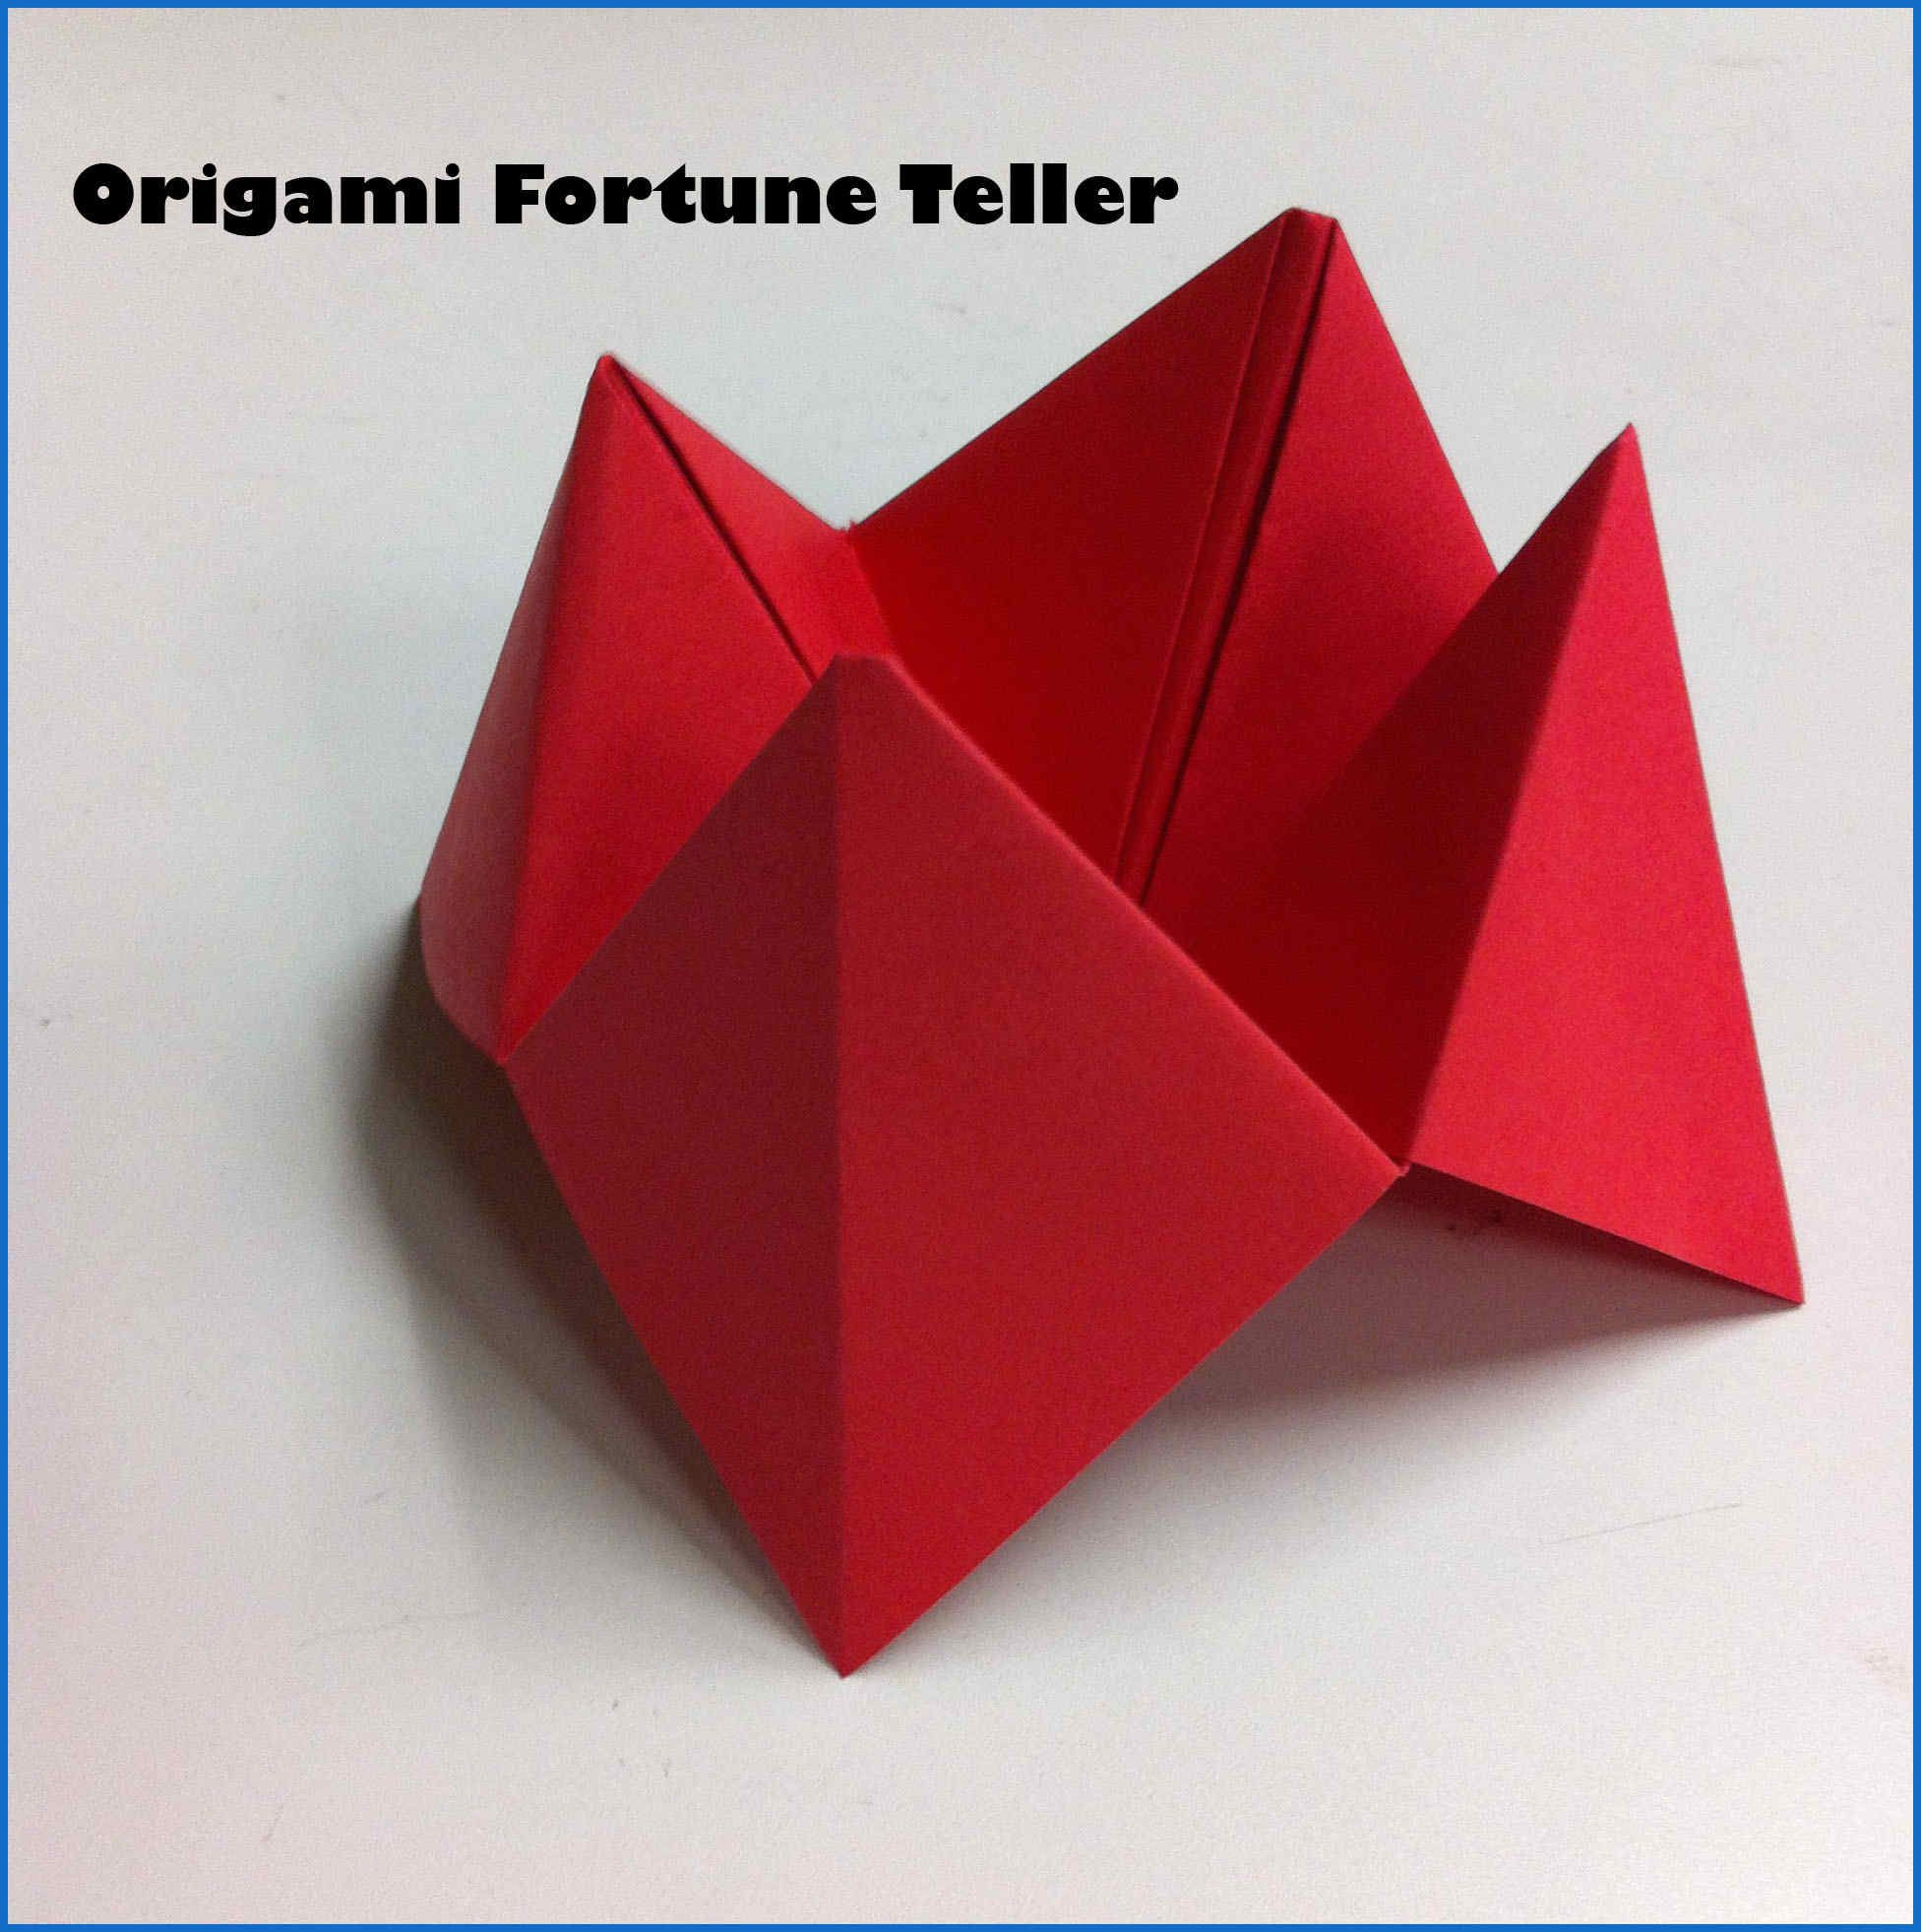 Origami Best Paper Folding For Kids Ideas On Paper Crafts Paper Folding For Kids Kids Origami Origami Easy